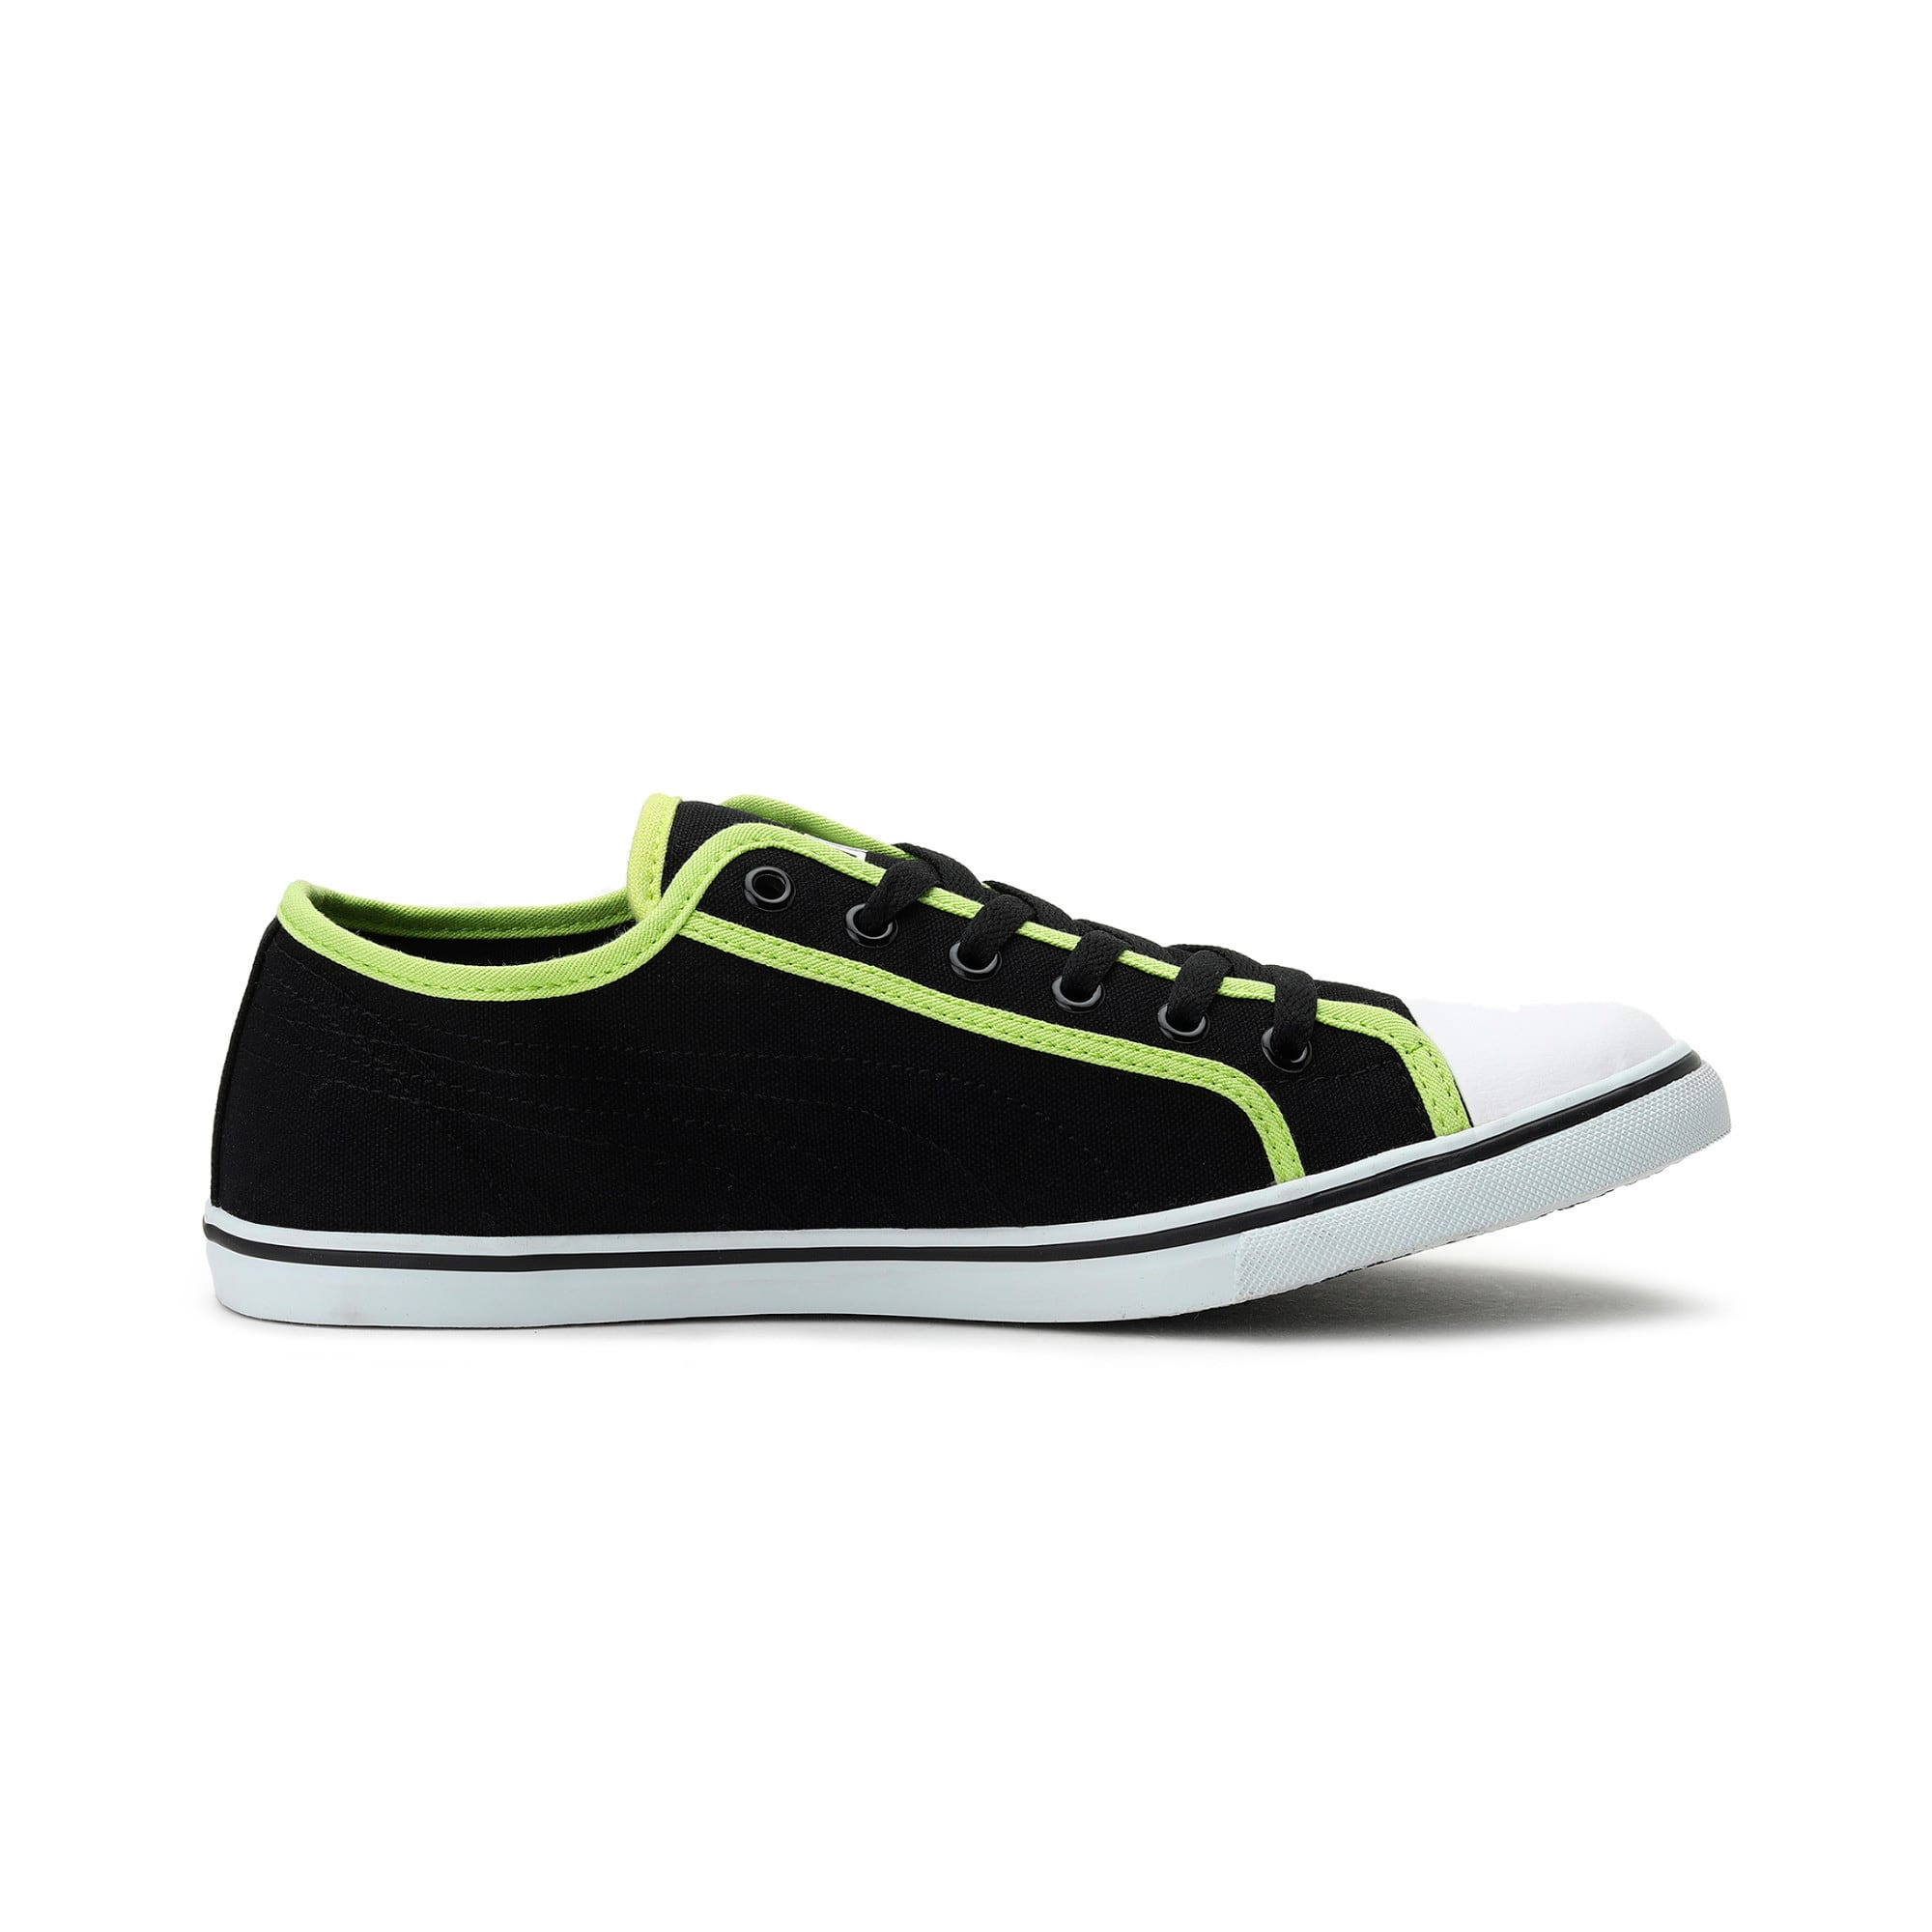 Thumbnail 5 of Puma Streetballer DP, Black-Puma White-Limepunch, medium-IND